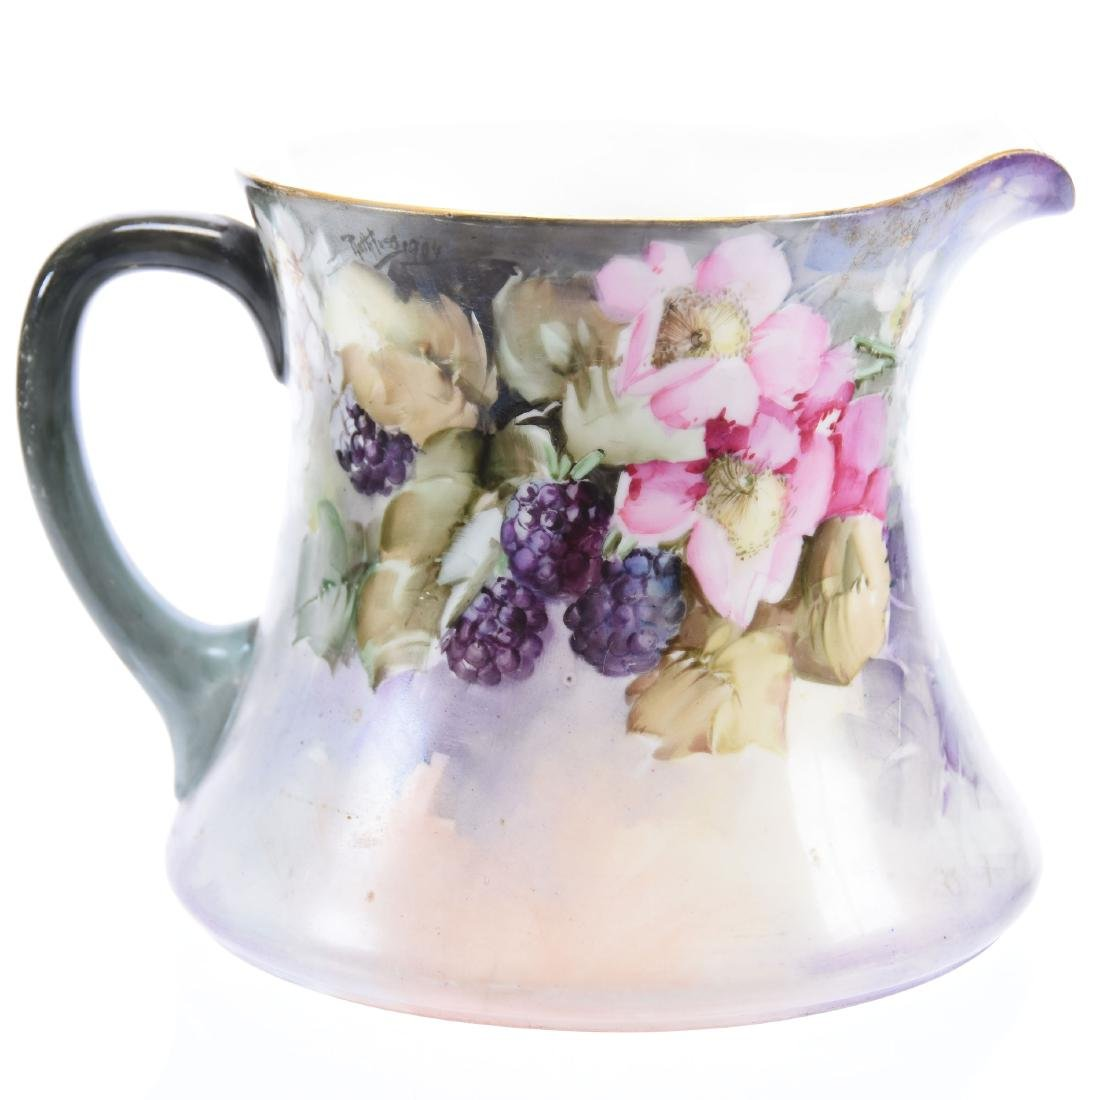 Cider Pitcher, Marked Limoges Hand-Painted